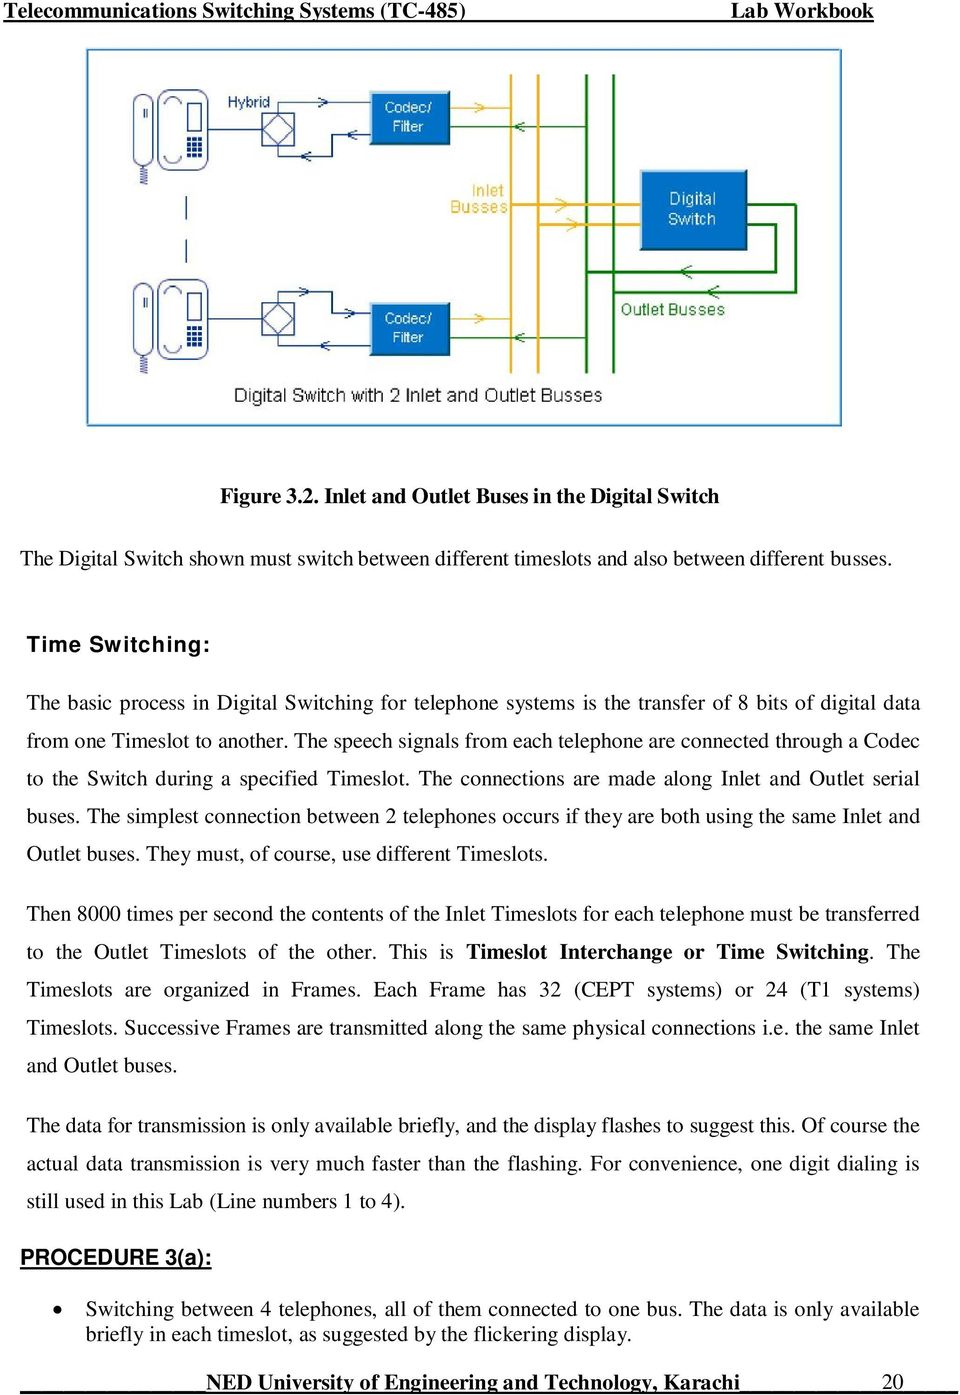 Telecommunications Switching Systems Tc 485 Practical Workbook For Telecom Hybrid Circuits Other Equipments Than Telephones The Speech Signals From Each Telephone Are Connected Through A Codec To Switch During